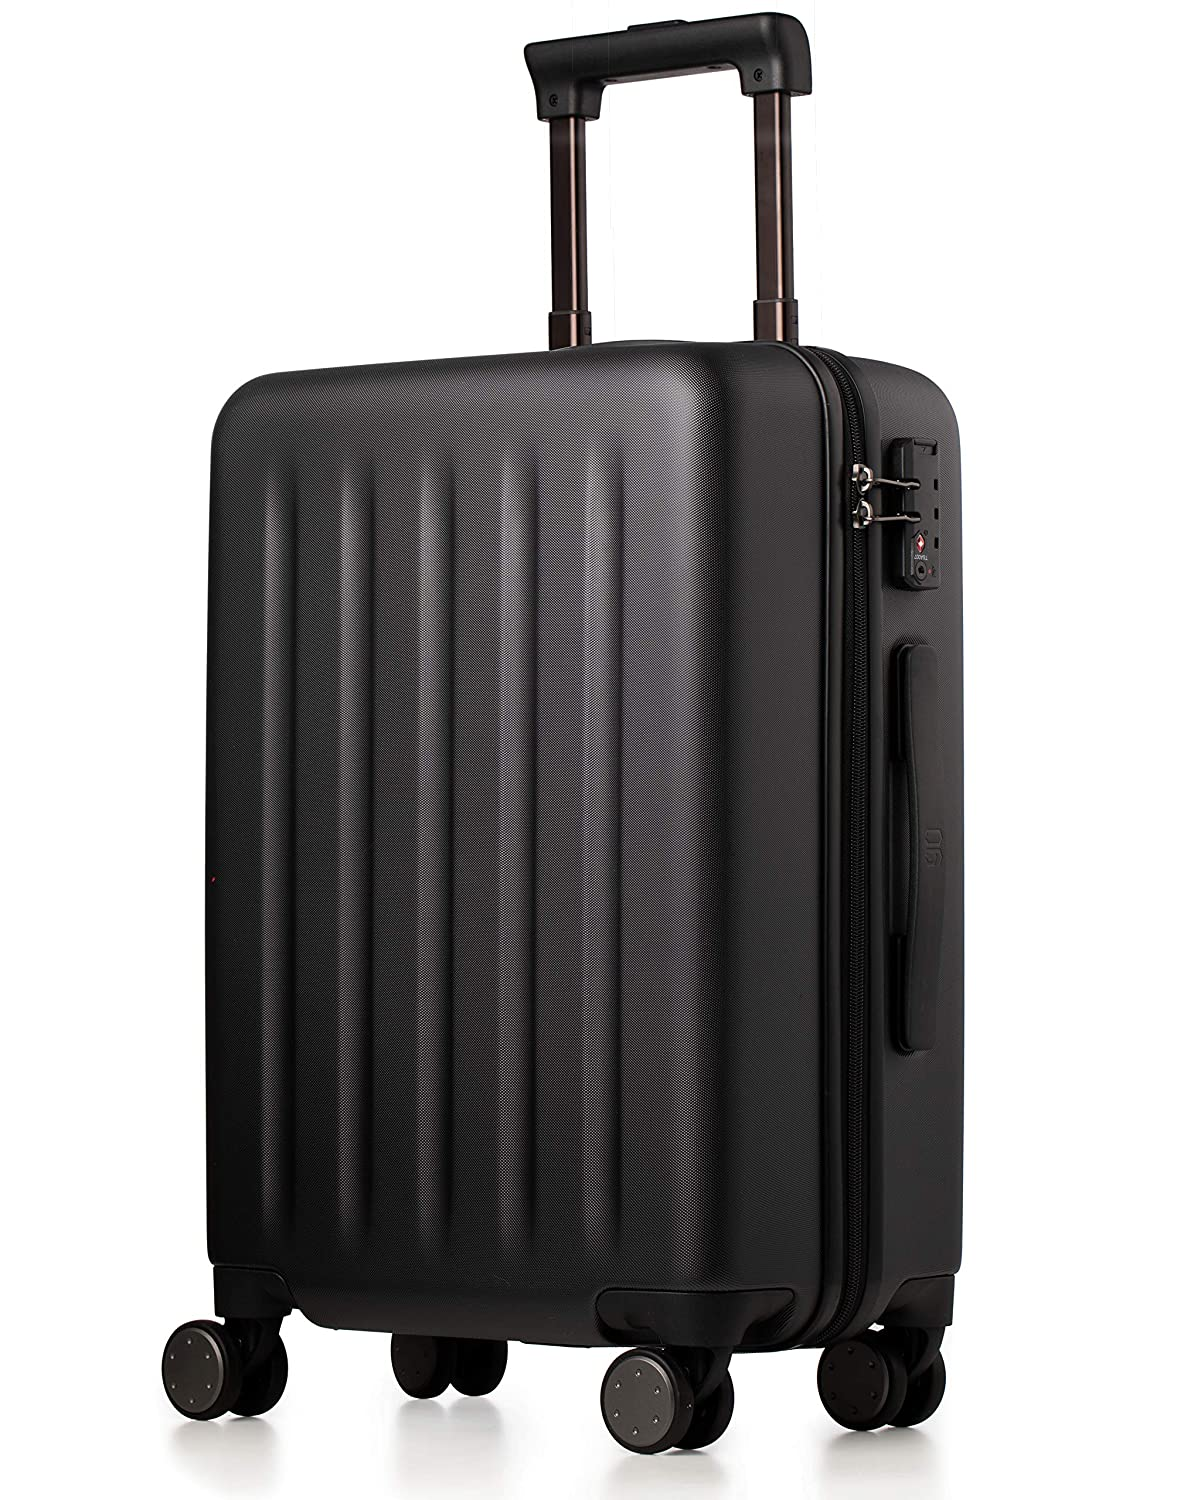 Carry On Luggage 22x14x9 with Spinner Wheels, 100 Polycarbonate Hardside NINETYGO Lightweight TSA Compliant Carry on Suitcase 20 Inch Black